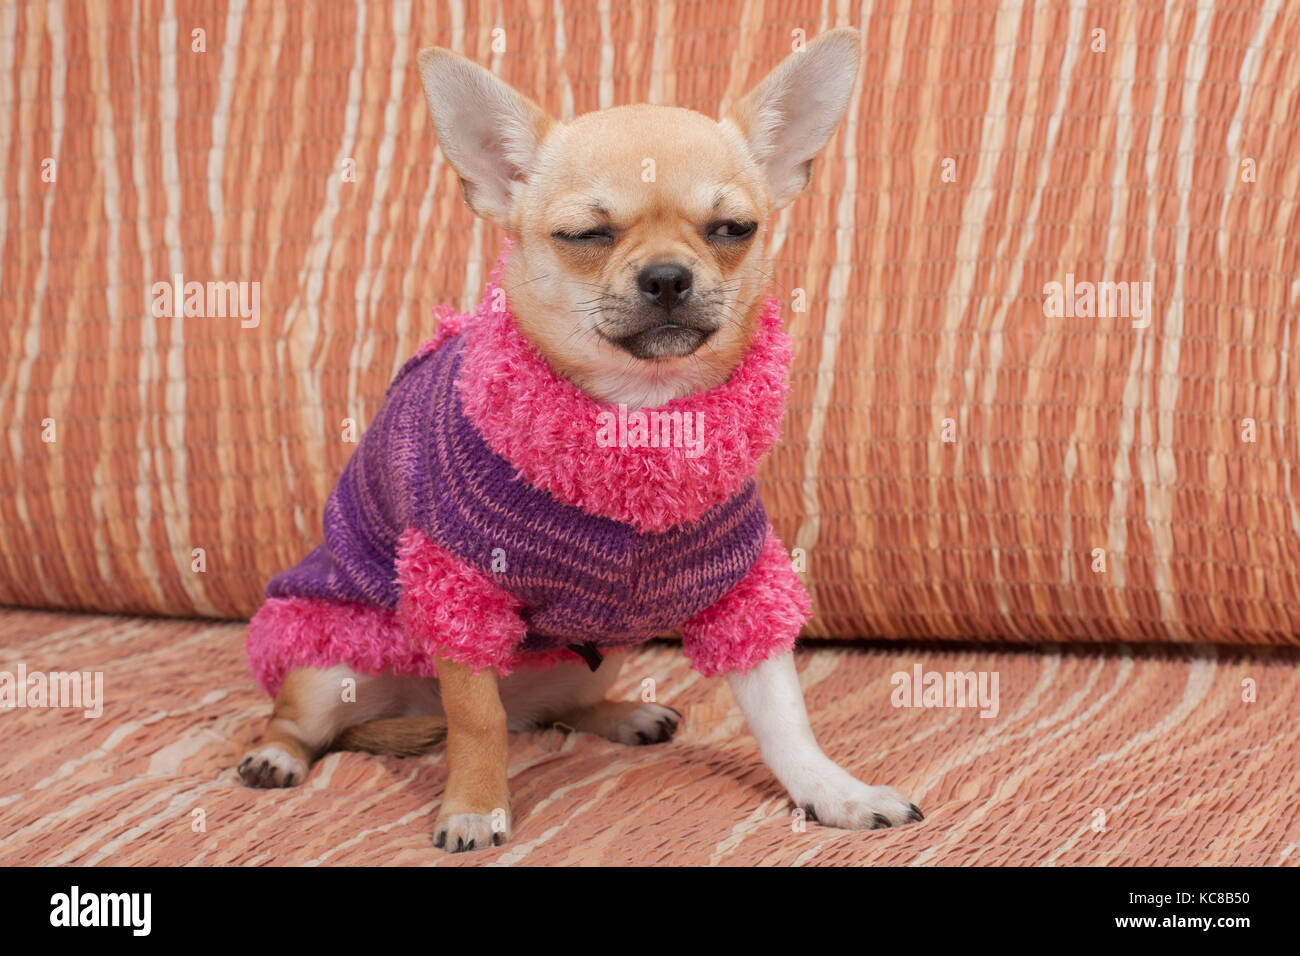 Sweater Dress Stock Photos & Sweater Dress Stock Images - Alamy